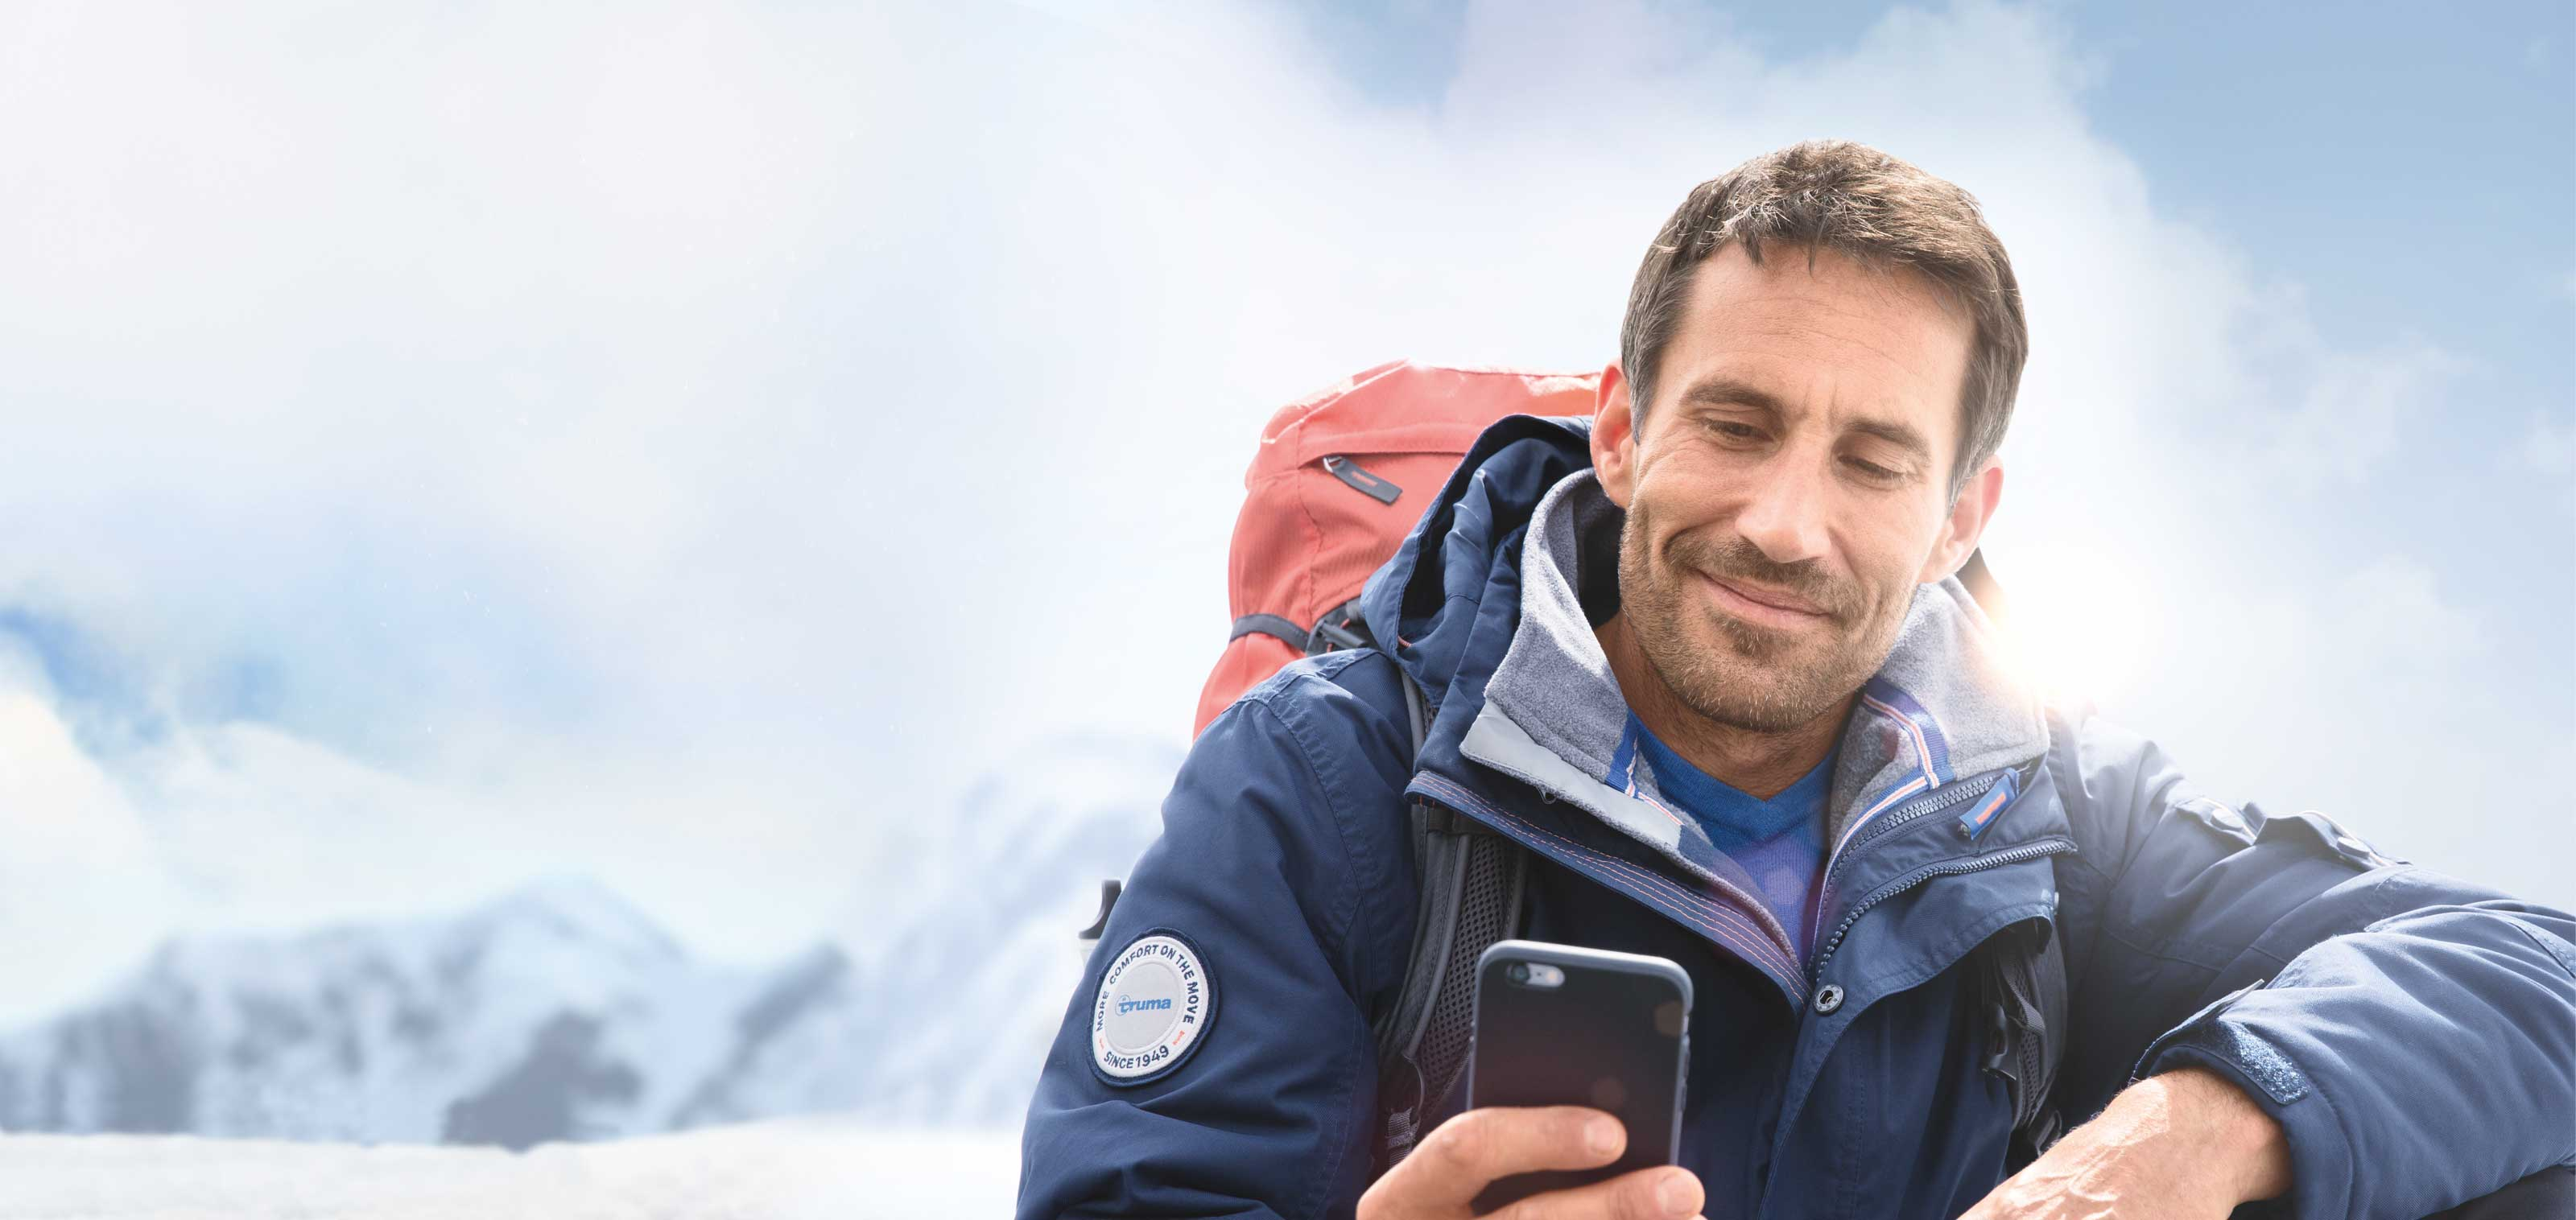 Man with backpack and outdoor jacket looking at the smartphone